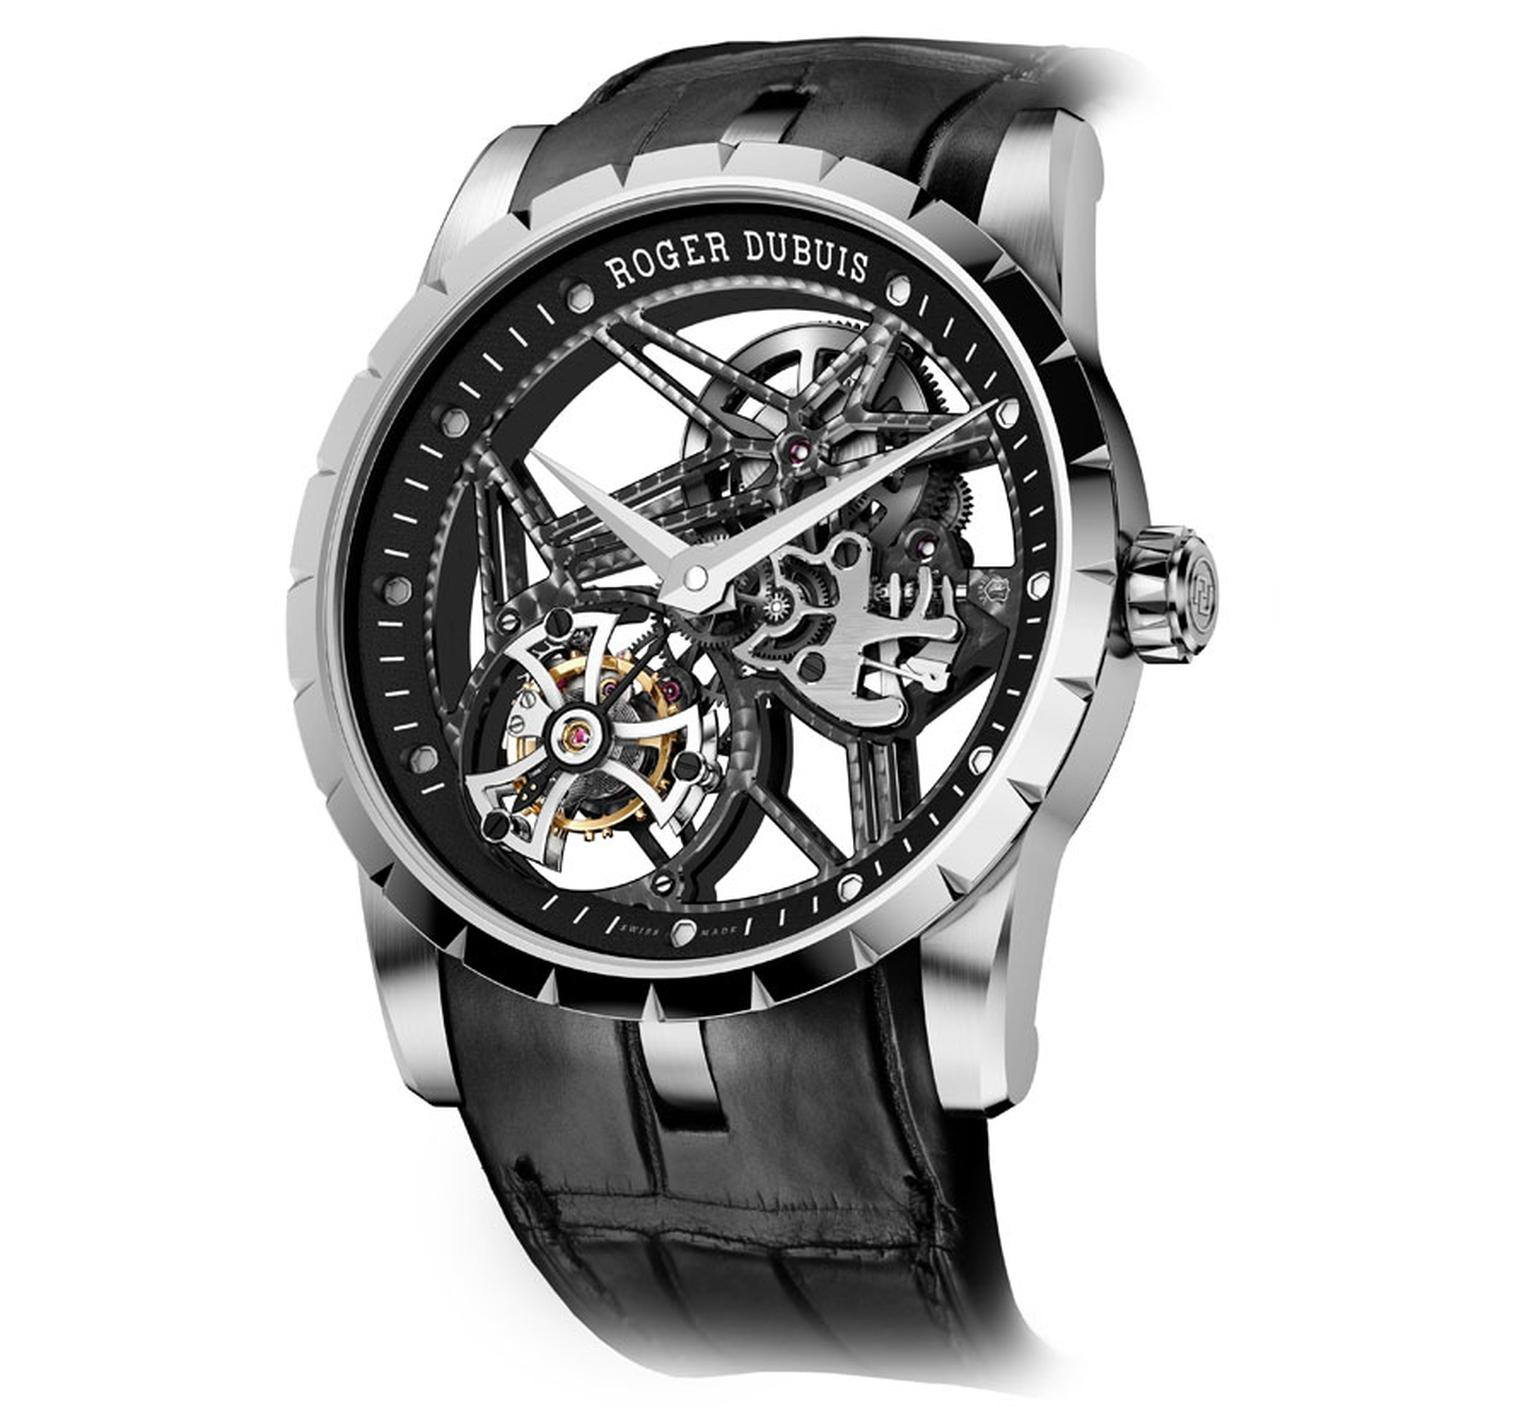 Roger-Dubuis-Excalibur-42-Skeleton-Tourbillon.jpg